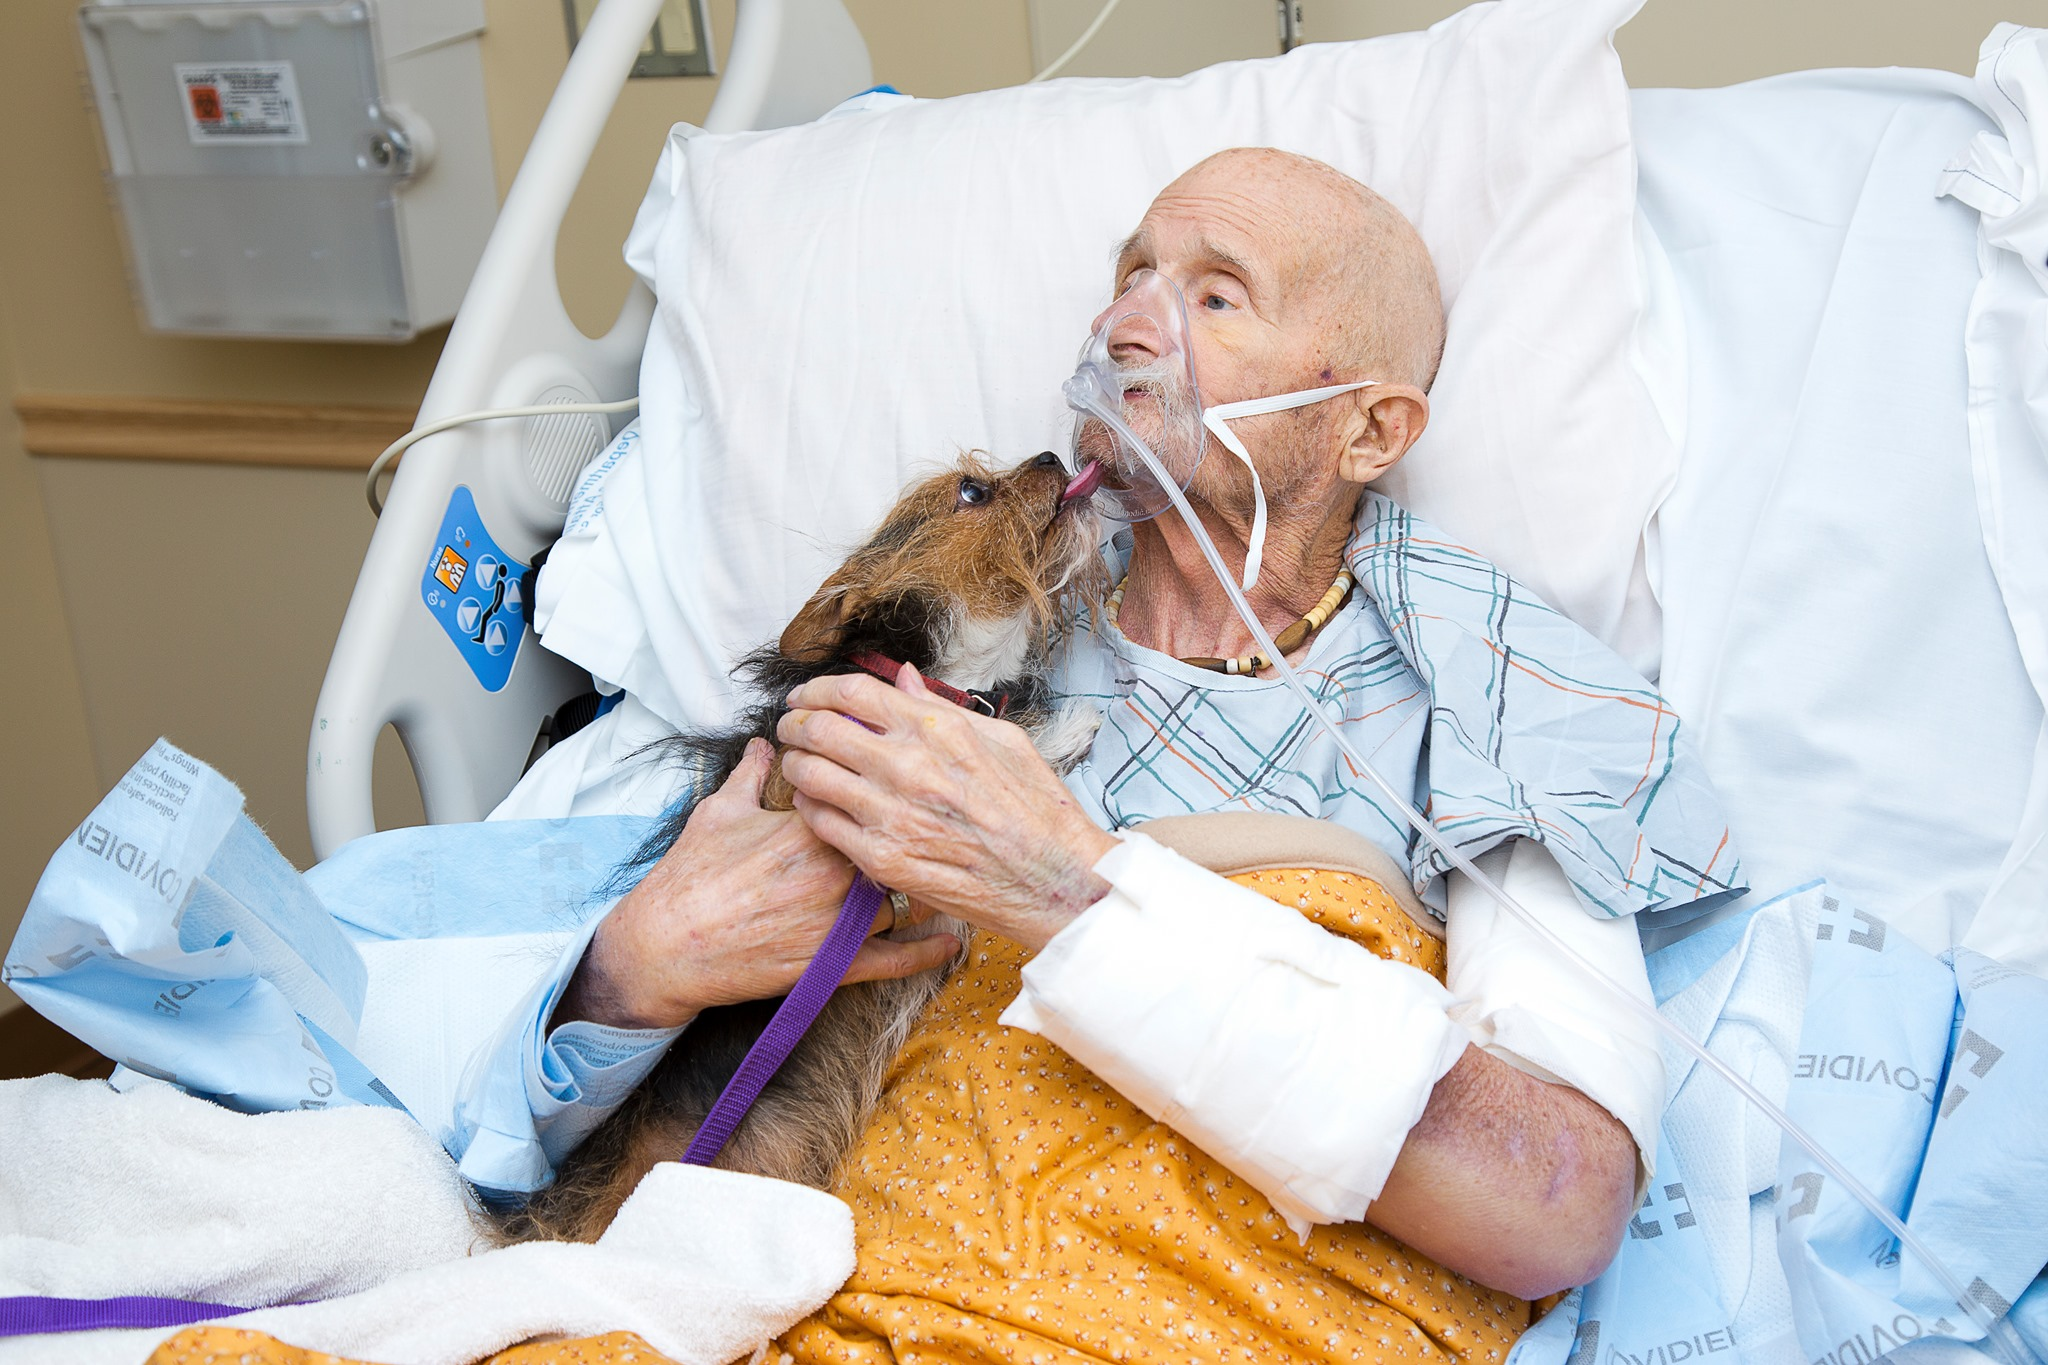 Veteran in hospice says goodbye to beloved dog